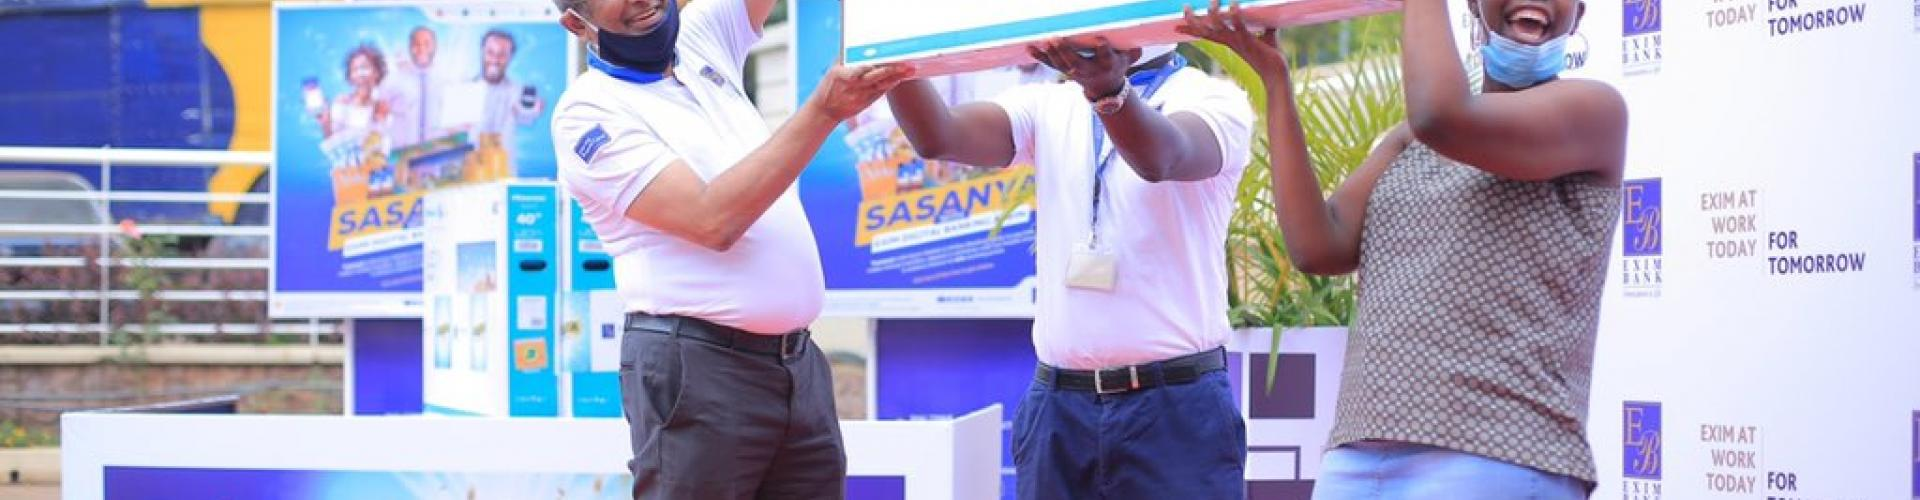 Winners of Sasanya with Exim Digital Banking promotion